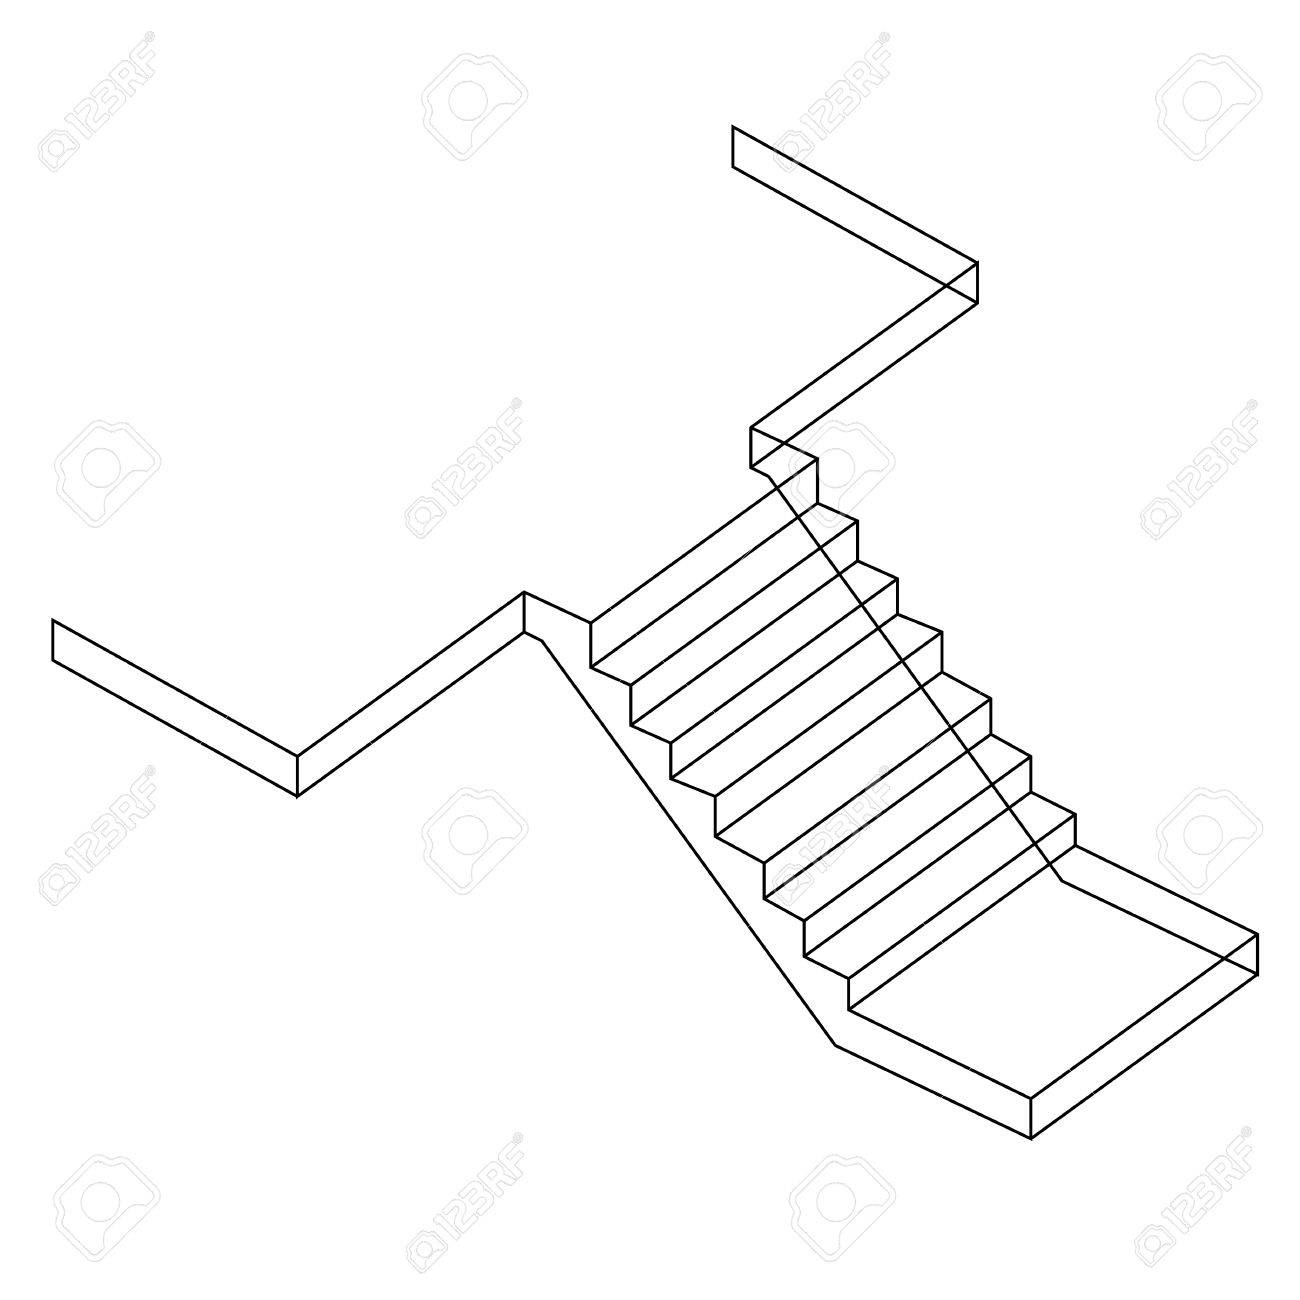 Drawing Of A Reinforced Cement Concrete Stair Stock Vector   39843872